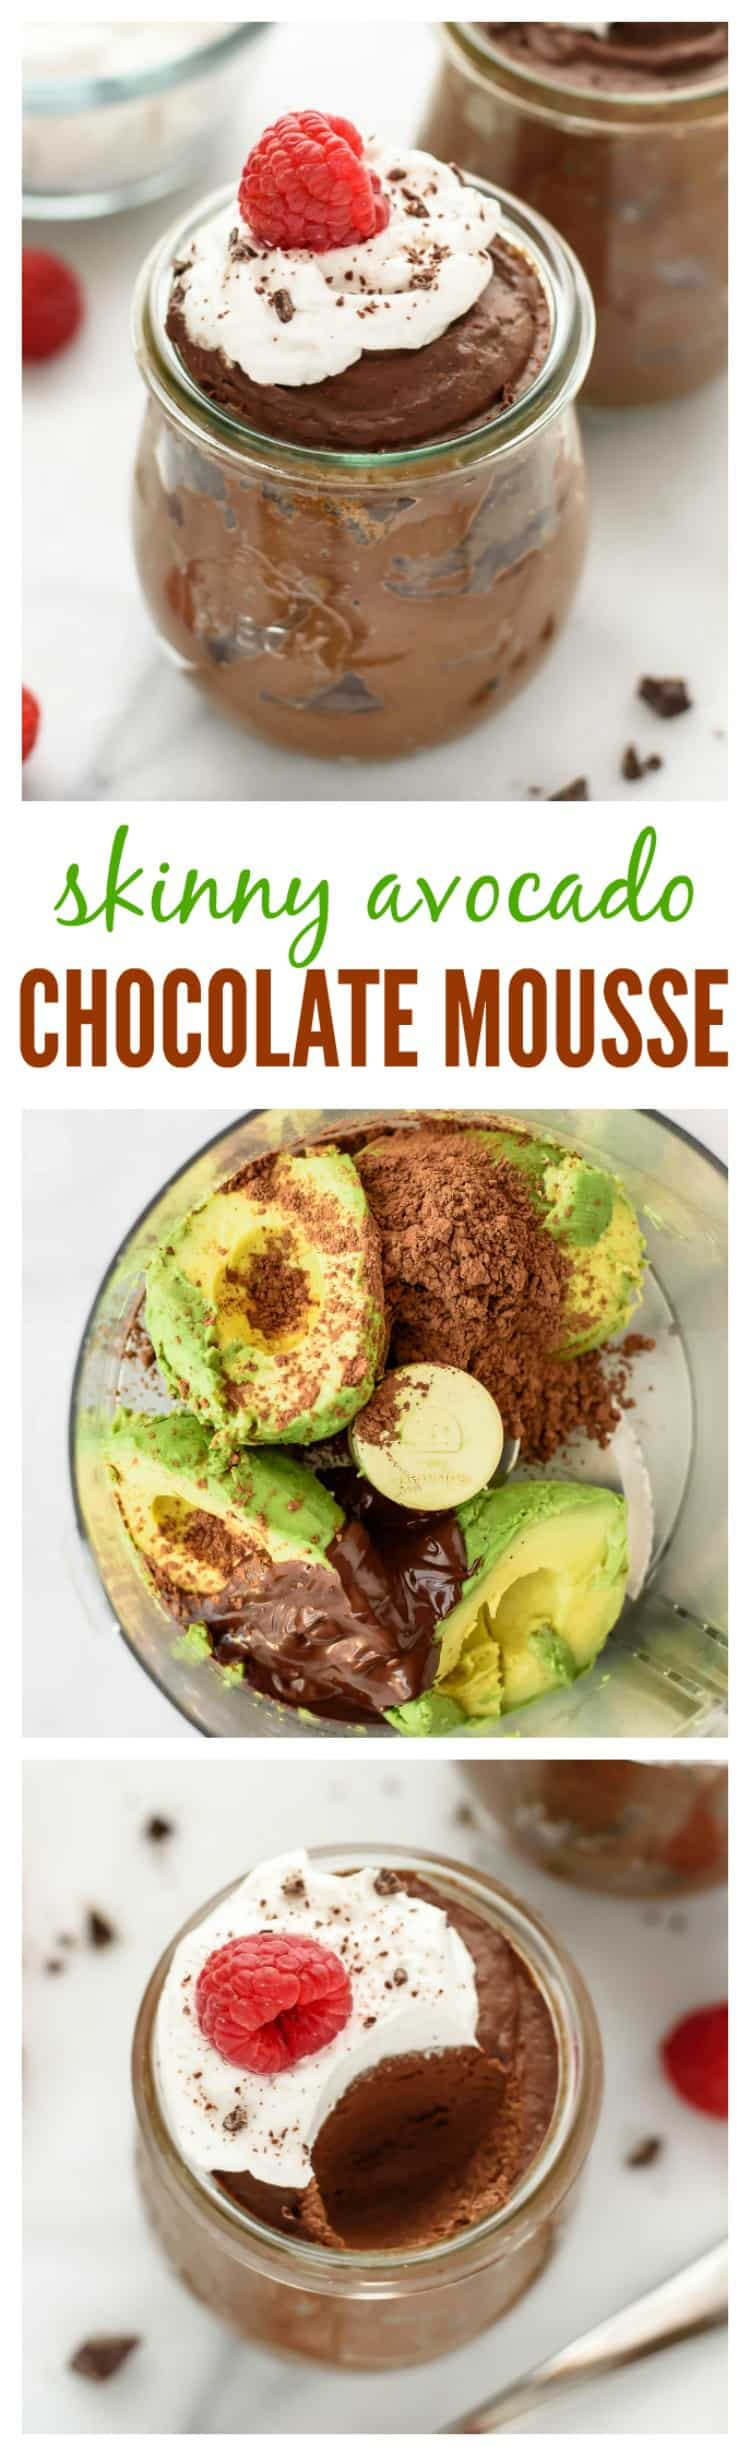 Avocado chocolate mousseis not just healthier chocolate mousse; it is also one of the easiest chocolate mousse recipes you will ever make! A dairy-free, gluten-free, refined-sugar free, vegan dessert that is ready to eat in 5 minutes!#healthydesserts #chocolate #glutenfree #dairyfree #vegan